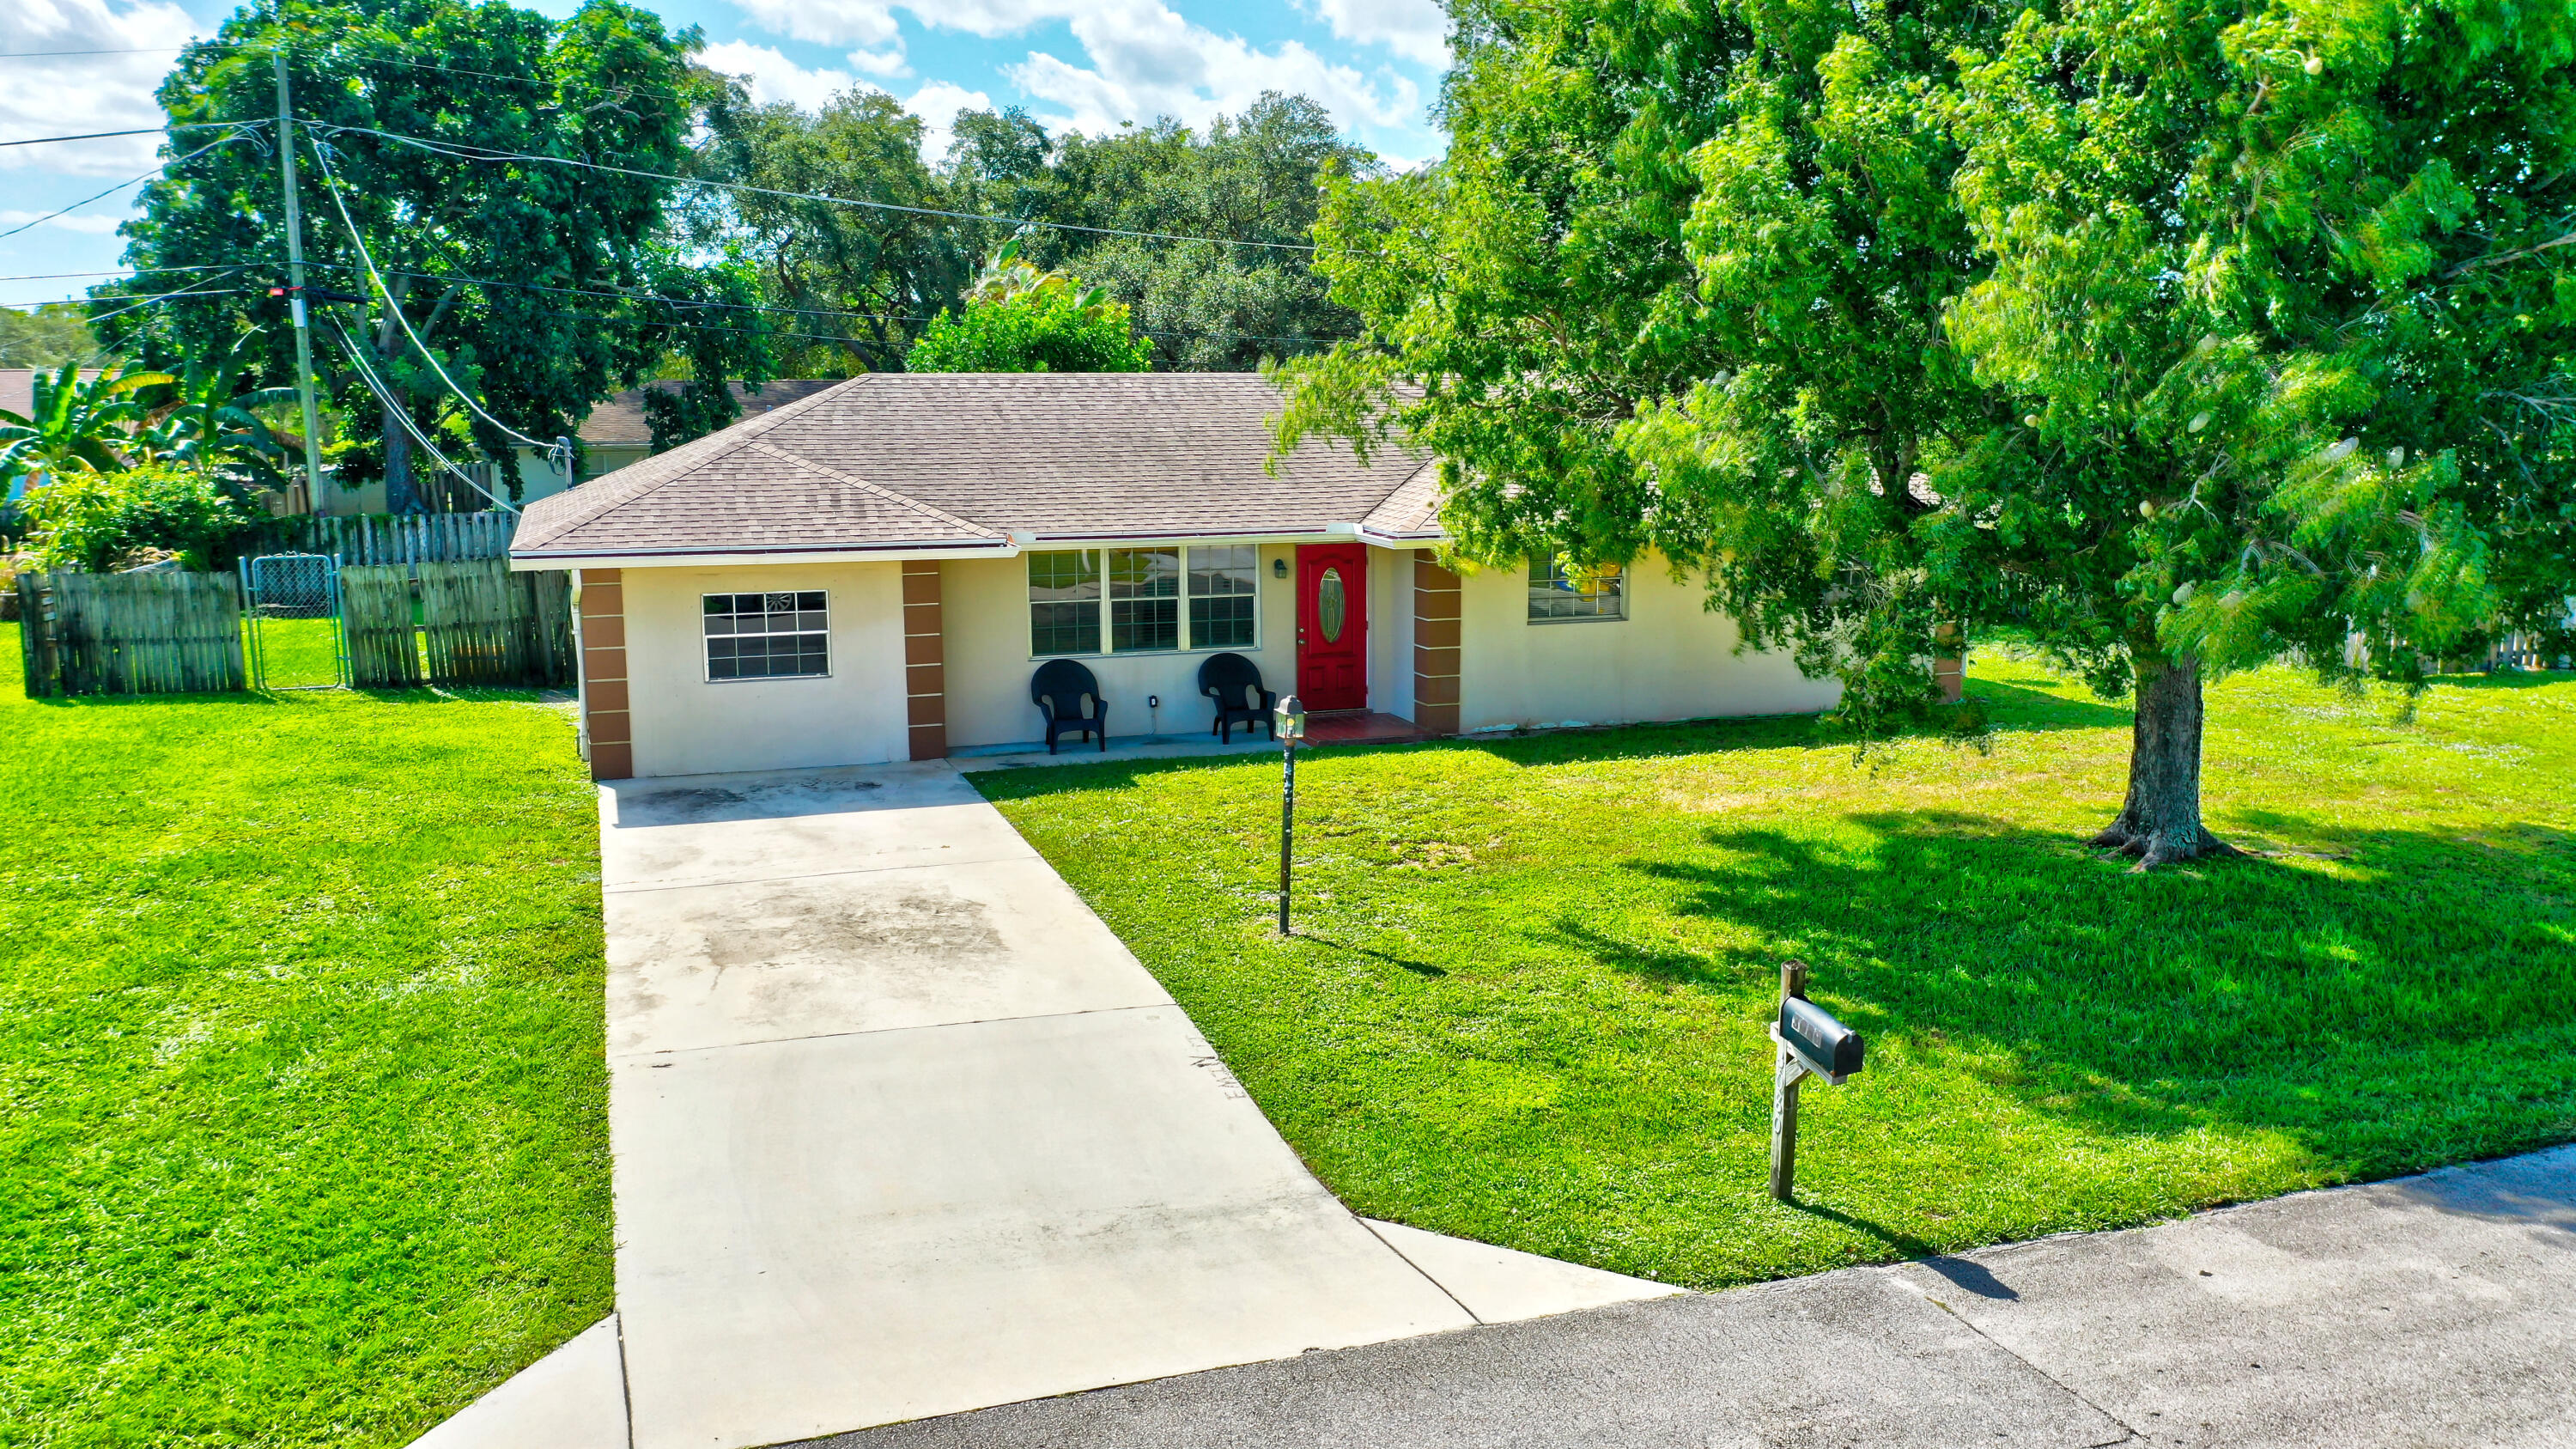 **No Showings Until Open House Sat 10/23 12-3pm & Sun 10/24 1-4pm** All offers due by Mon 10/25 at 5pm** Charming 4 Bed / 2 Bath home in the desirable Unincorporated Lake Worth. Perfectly priced, This home packs lots of wonderful features with great upgrade potential. Features such as a Large Kitchen, Solid wood Cabinets, Granite counters, Tile floors, Fully remodeled master bath, Converted Garage into 4th bedroom, large family room, spacious living room, Formal Dining, carpeted bedrooms & so much more.The large fenced back yard is perfect for entertaining. Equipped with a large spacious screened in lanai, plenty of room for a pool, additional parking for a boat, plenty of pay room for family & pets.Quiet neighborhood with no HOA, conveniently located in the center of it all. Just minutes to Highways, beaches, gyms, schools, shopping, restaurants, golf, dog park, bike trails, John Prince Park, and lots of entertainment. This home will go quickly! Make this your home today!!